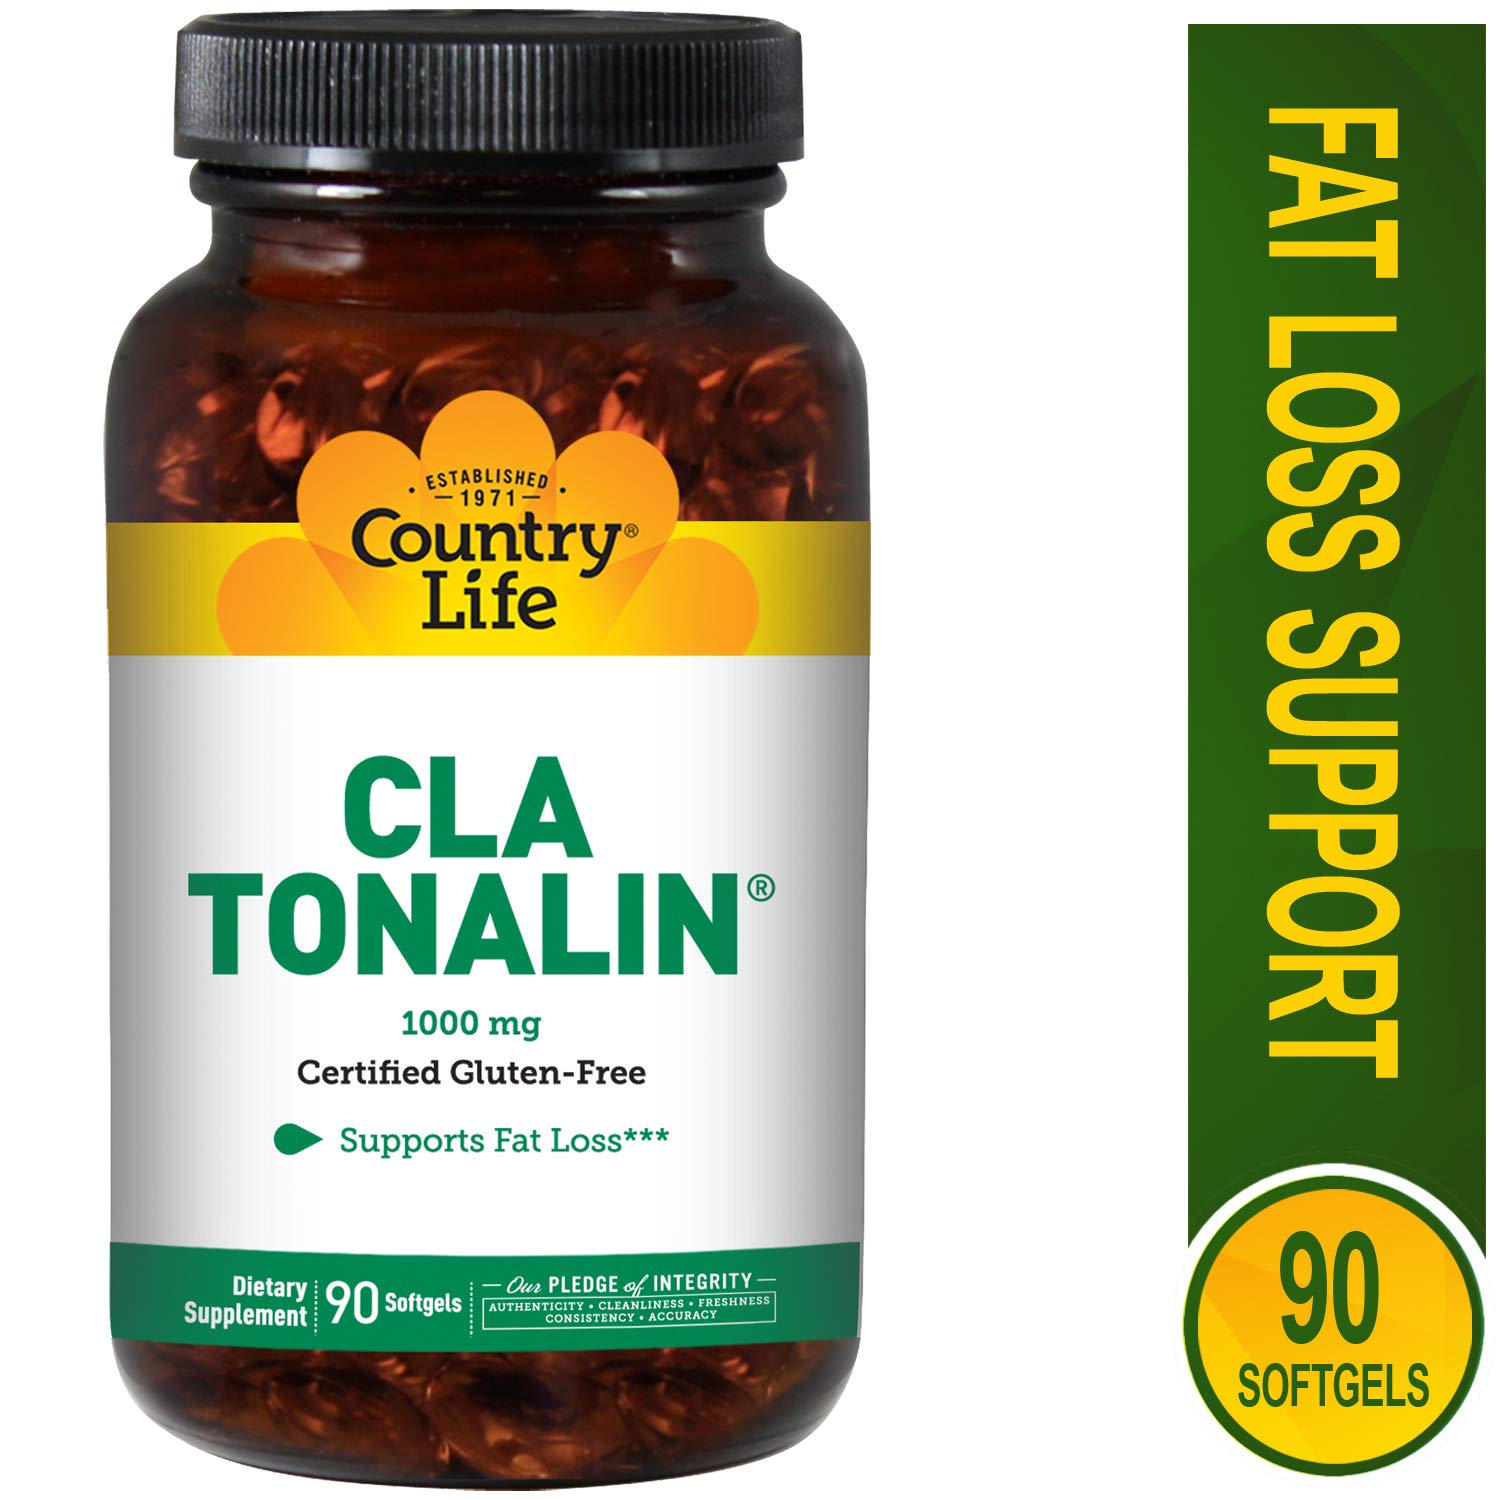 Country Life - CLA Tonalin, Supports Fat Loss - 90 Softgels by Country Life (Image #1)